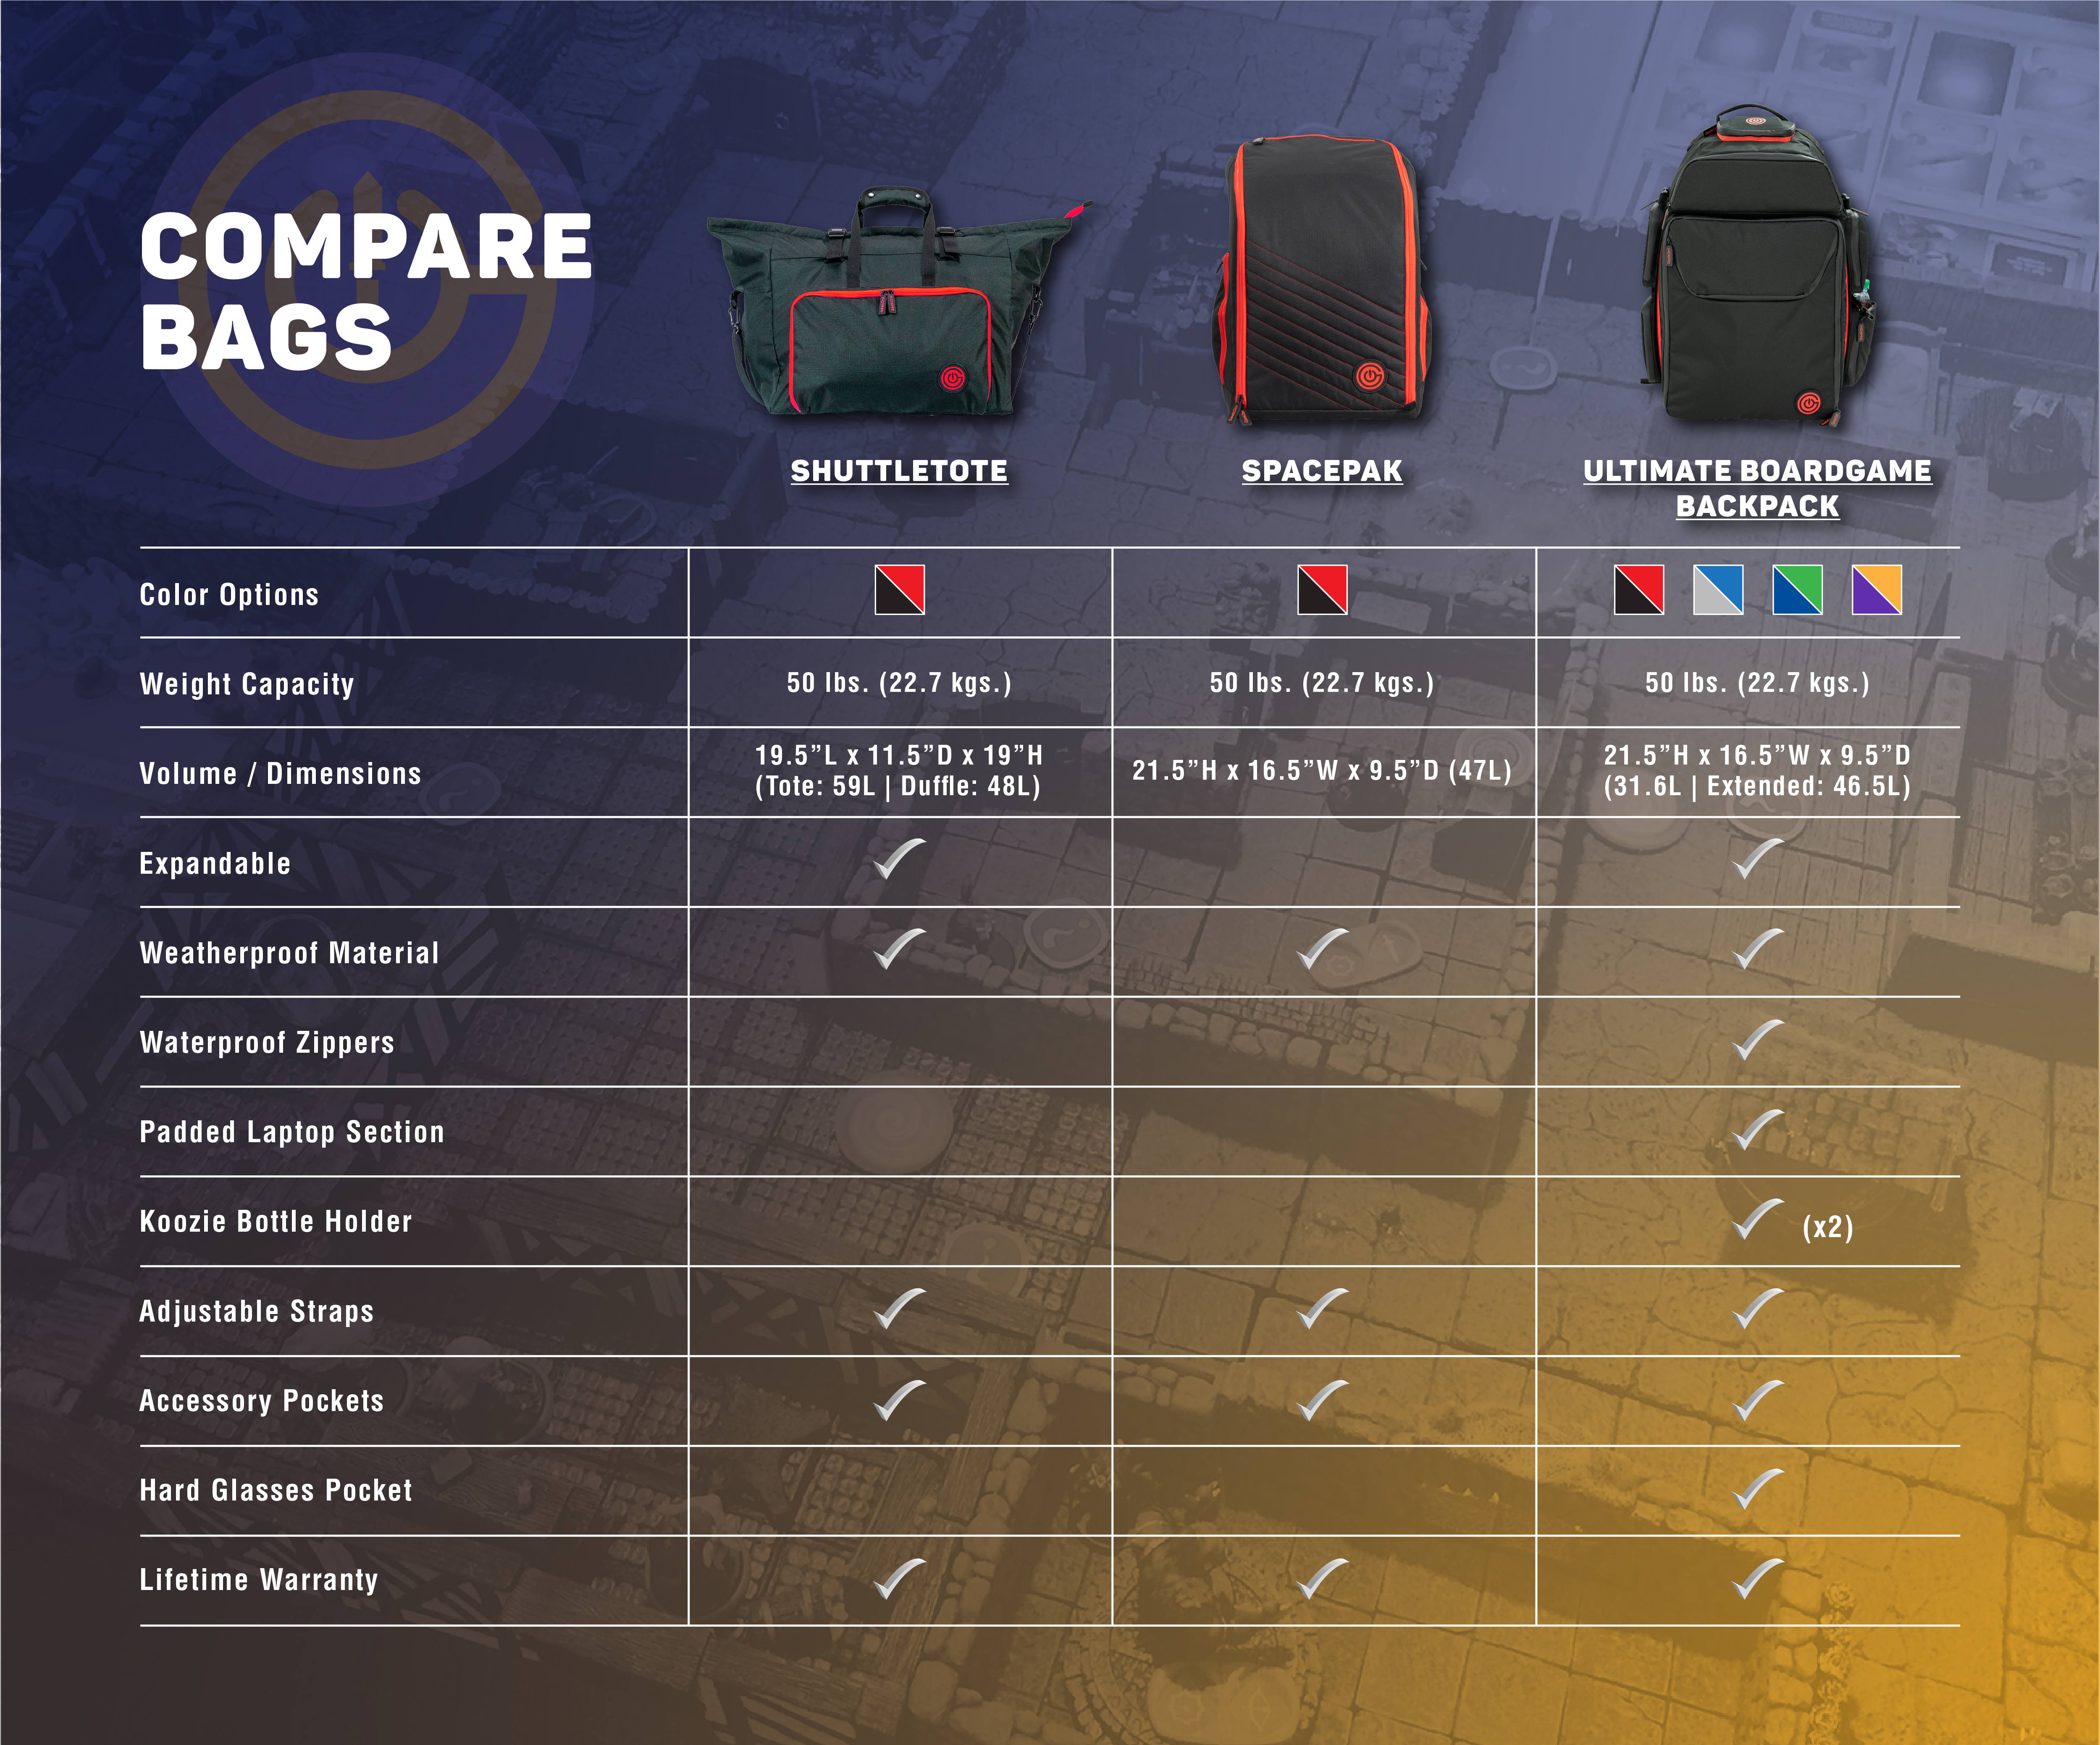 comparebags2x.png